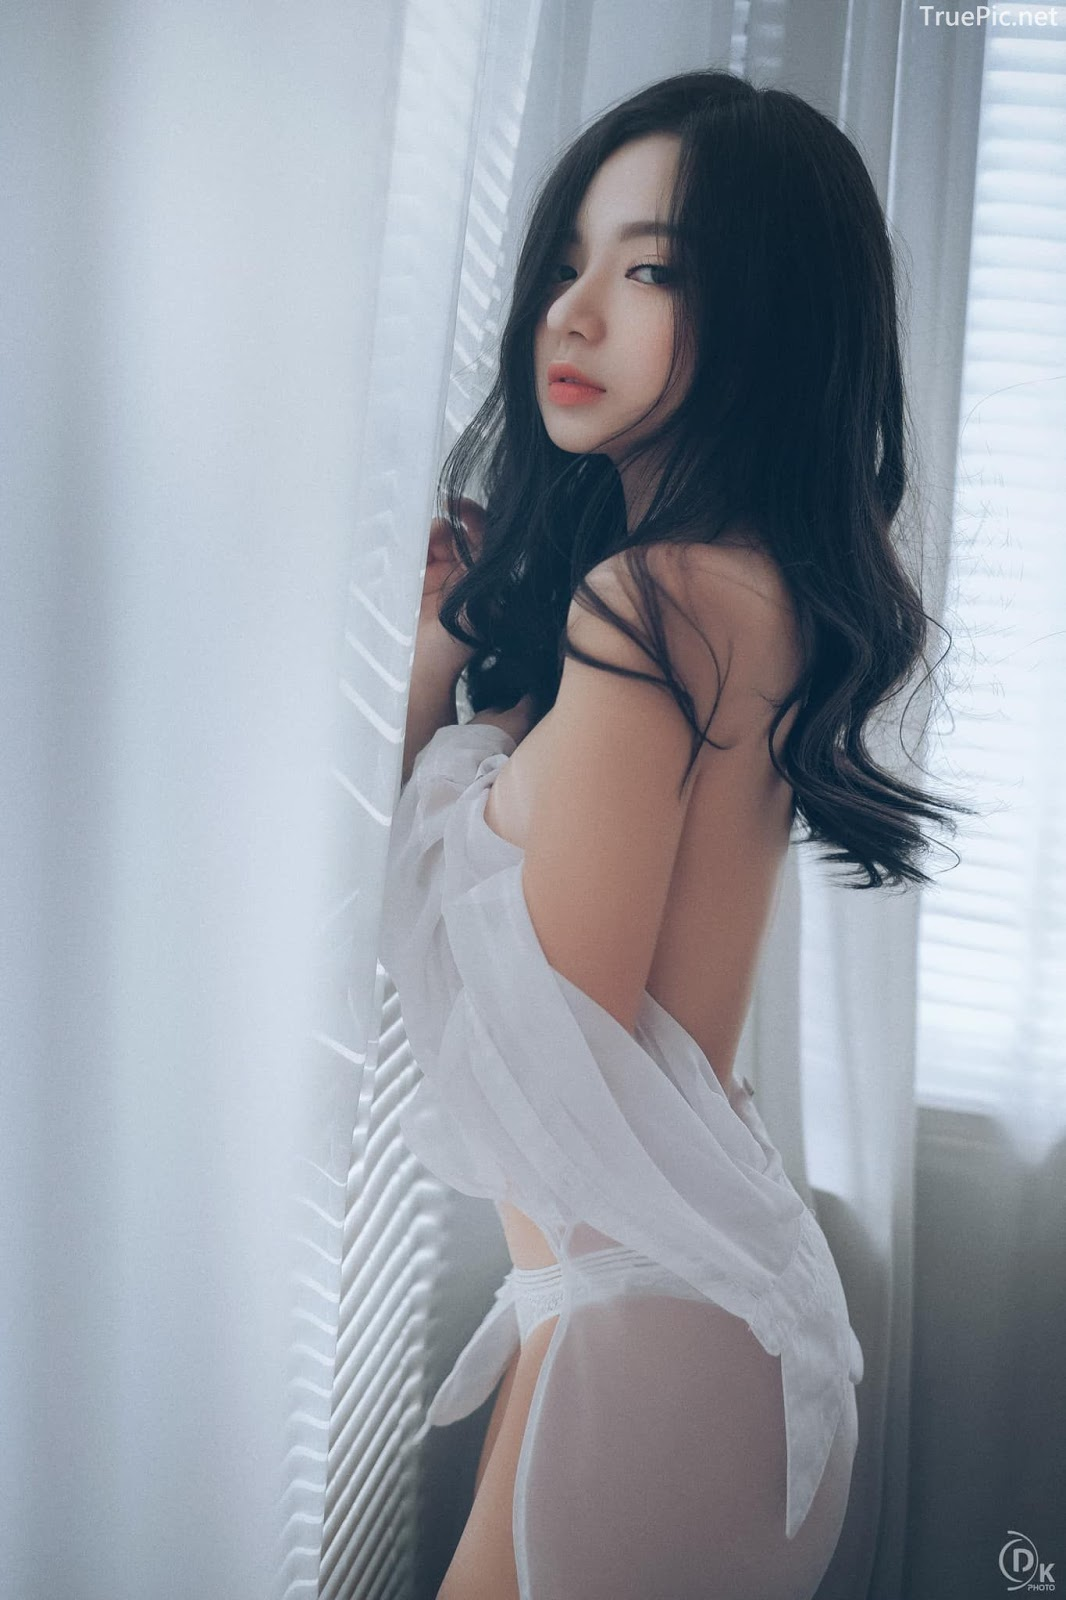 Vietnamese Sexy Model - Vu Ngoc Kim Chi - Beautiful in white - TruePic.net- Picture 4